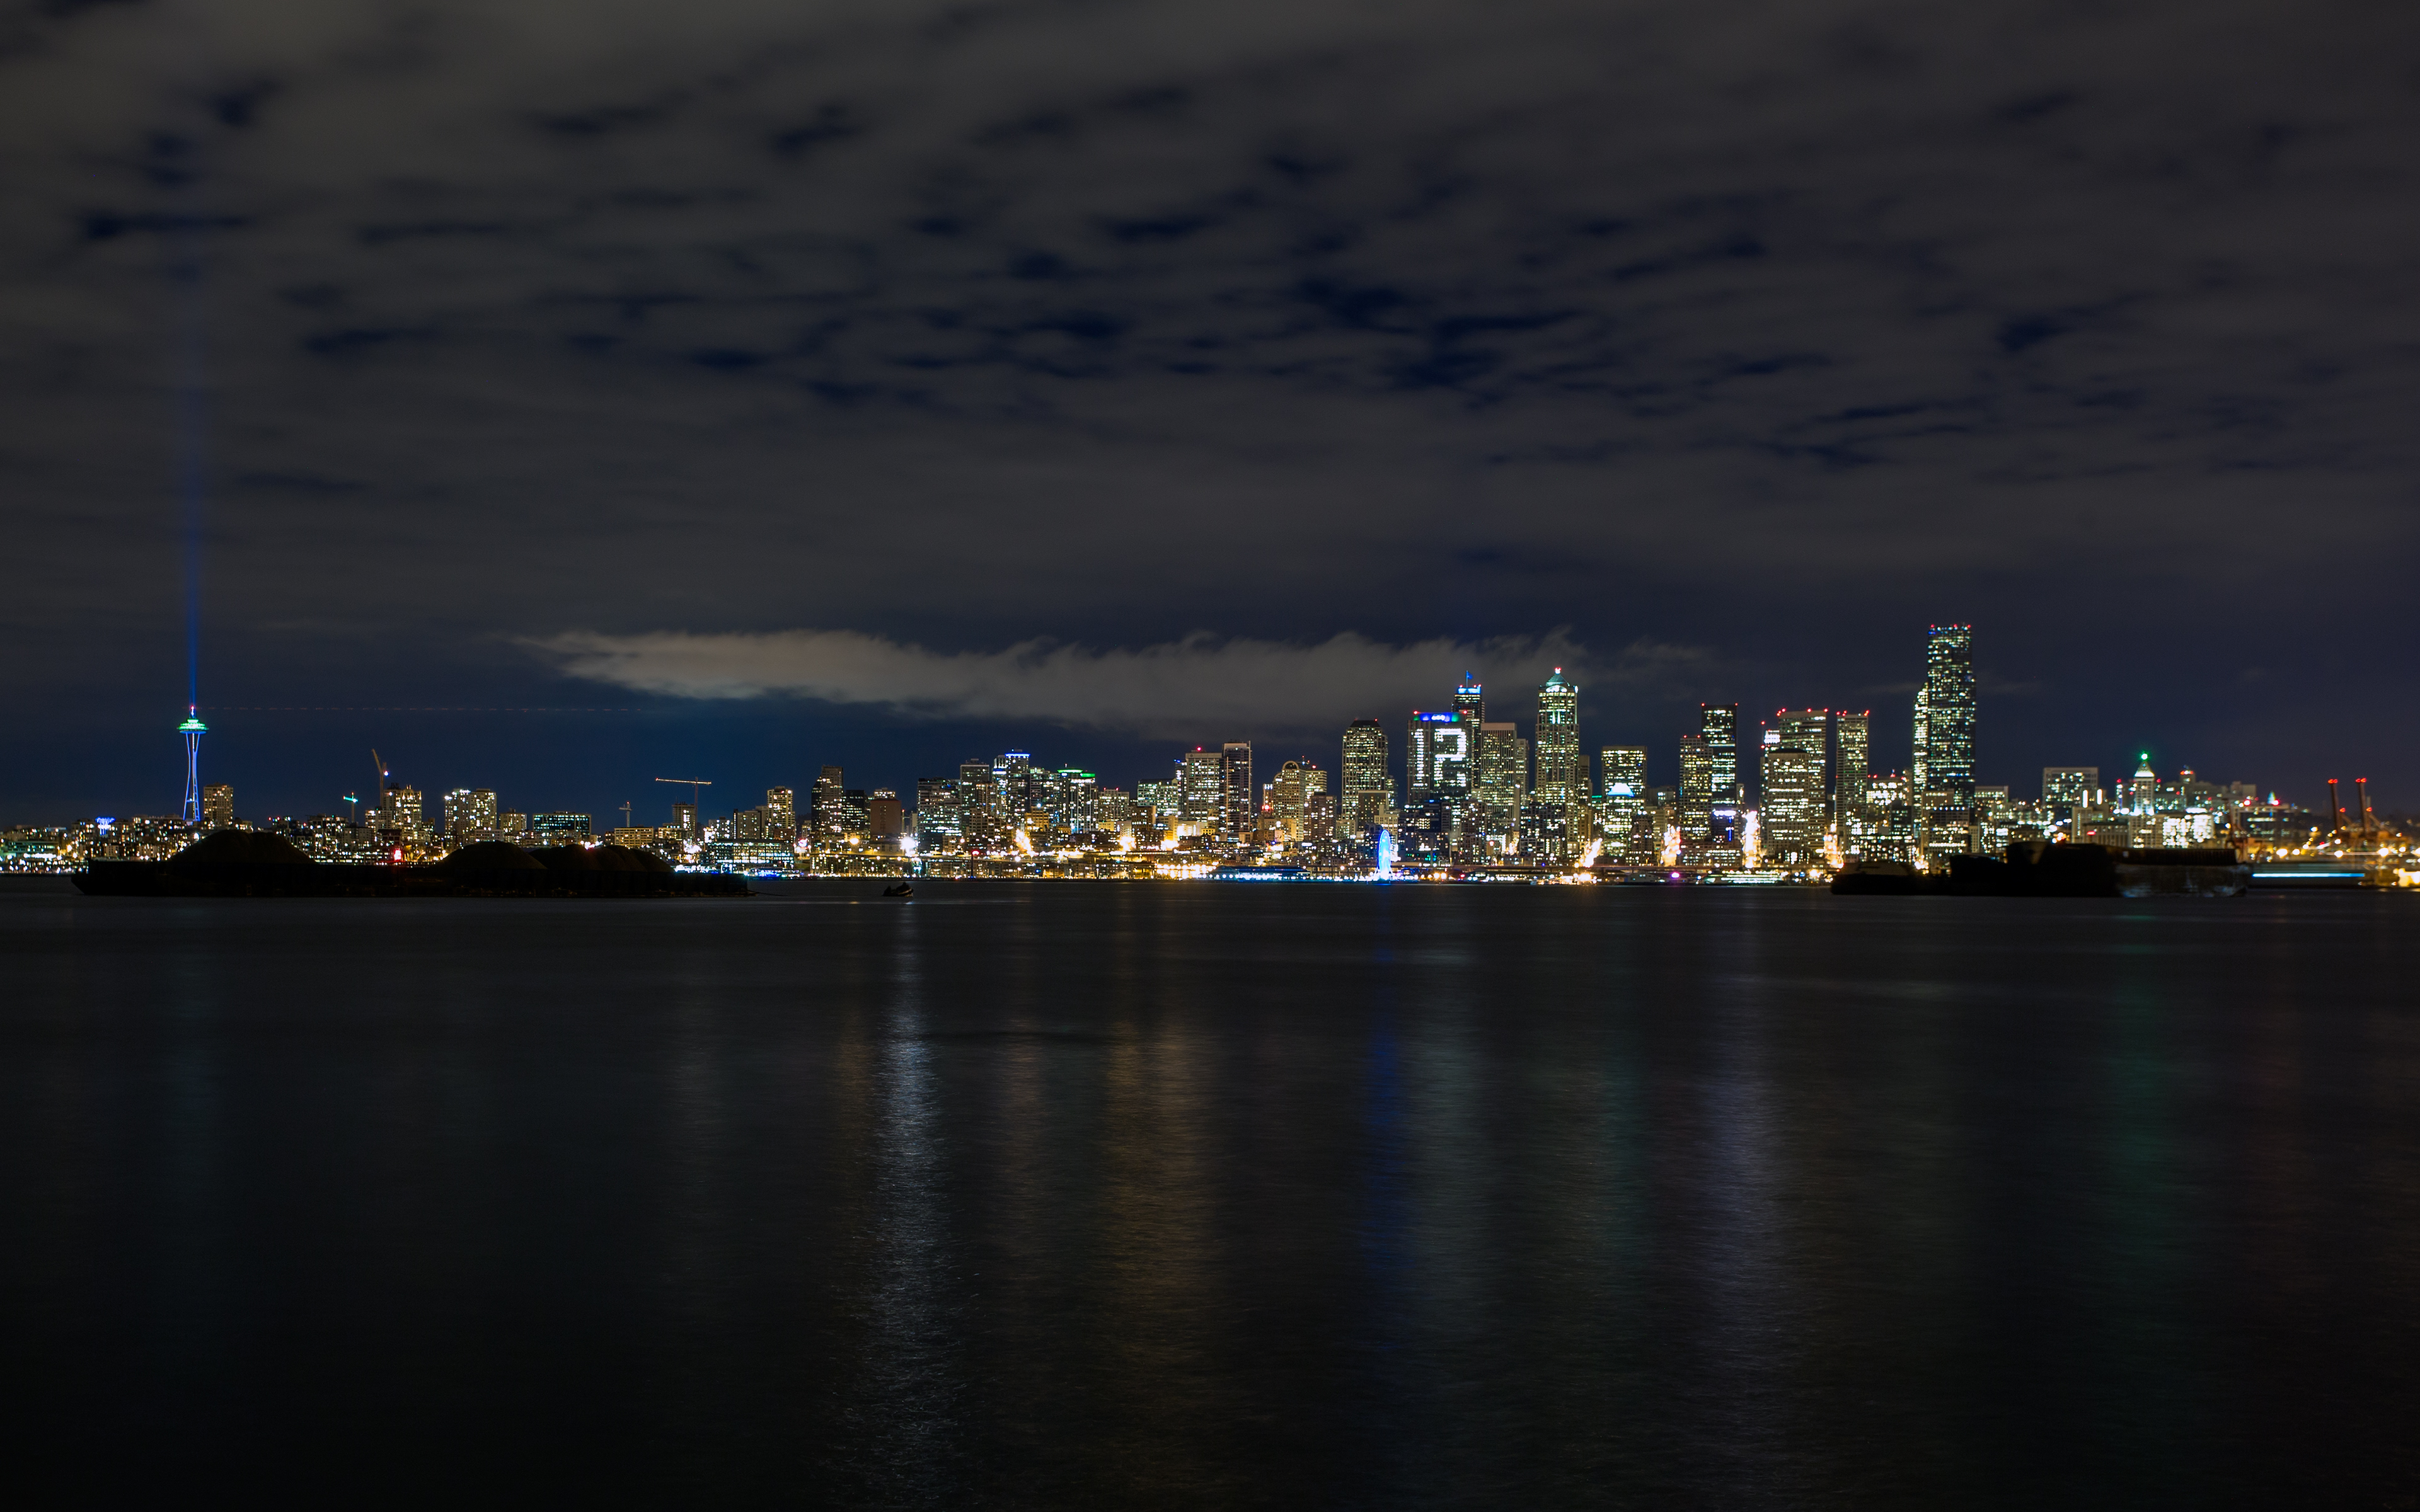 Seattle at night United States wallpapers and images   wallpapers 3840x2400